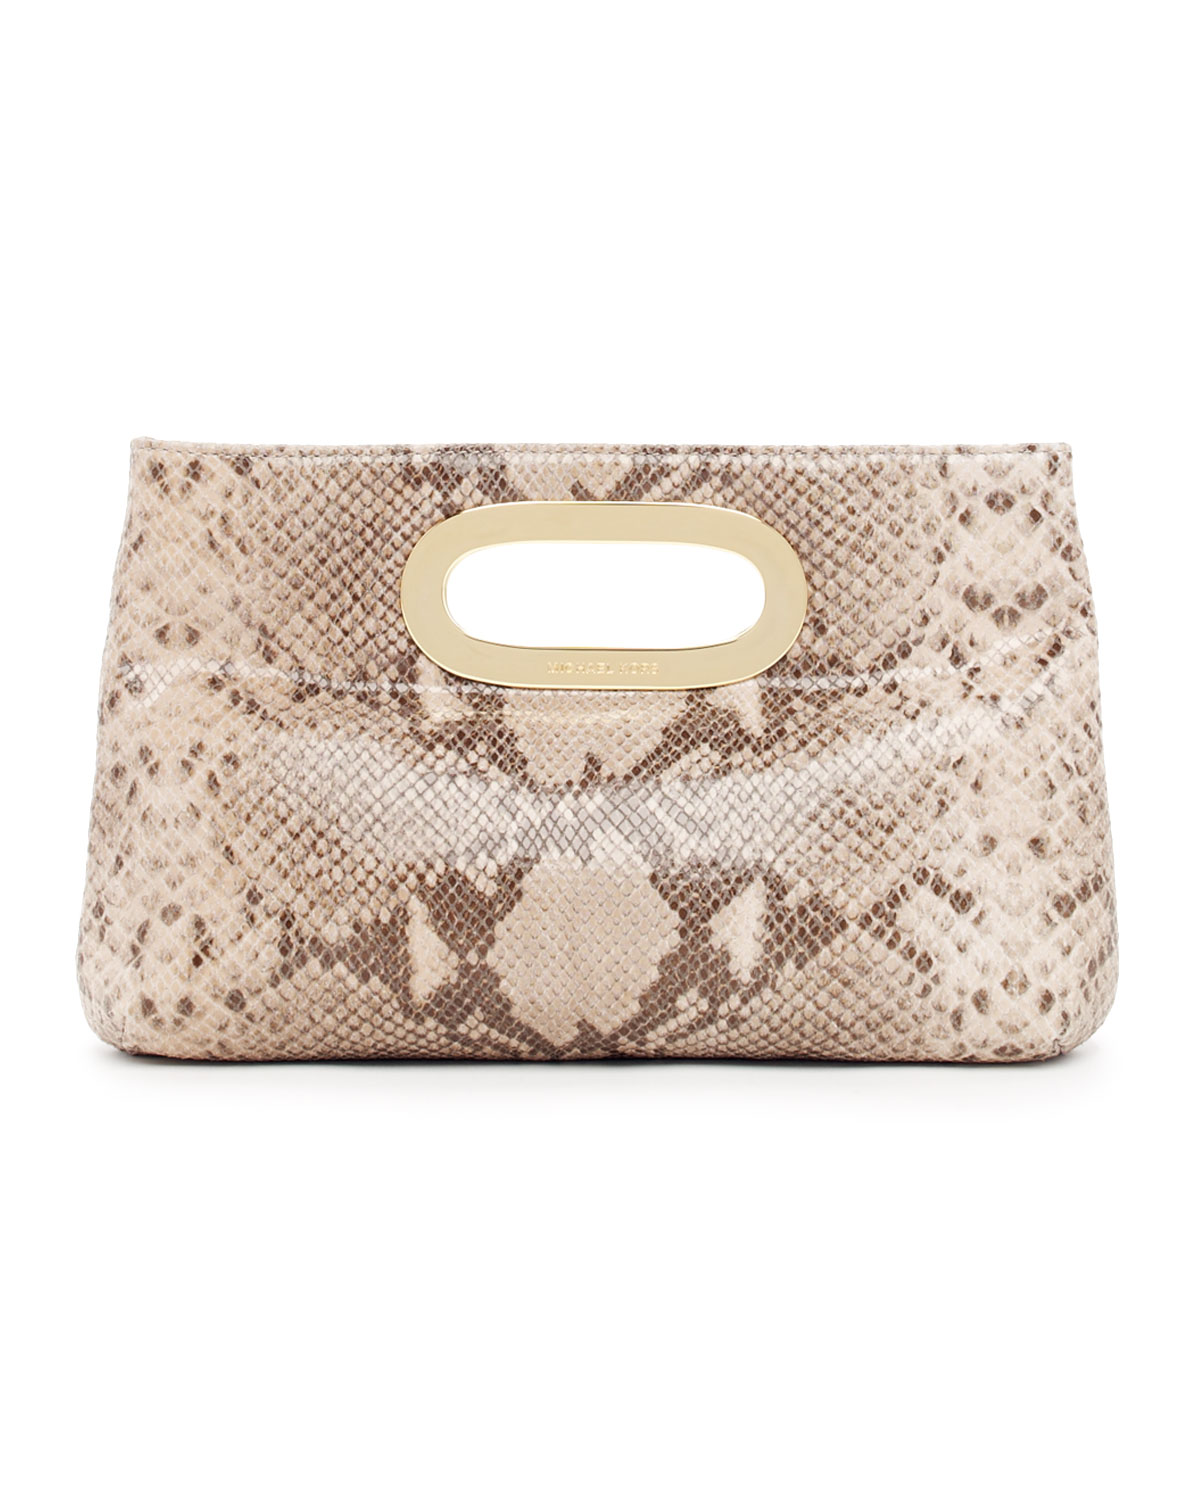 c69b4a1d9f16 Lyst - Michael Kors Berkley Clutch in Natural